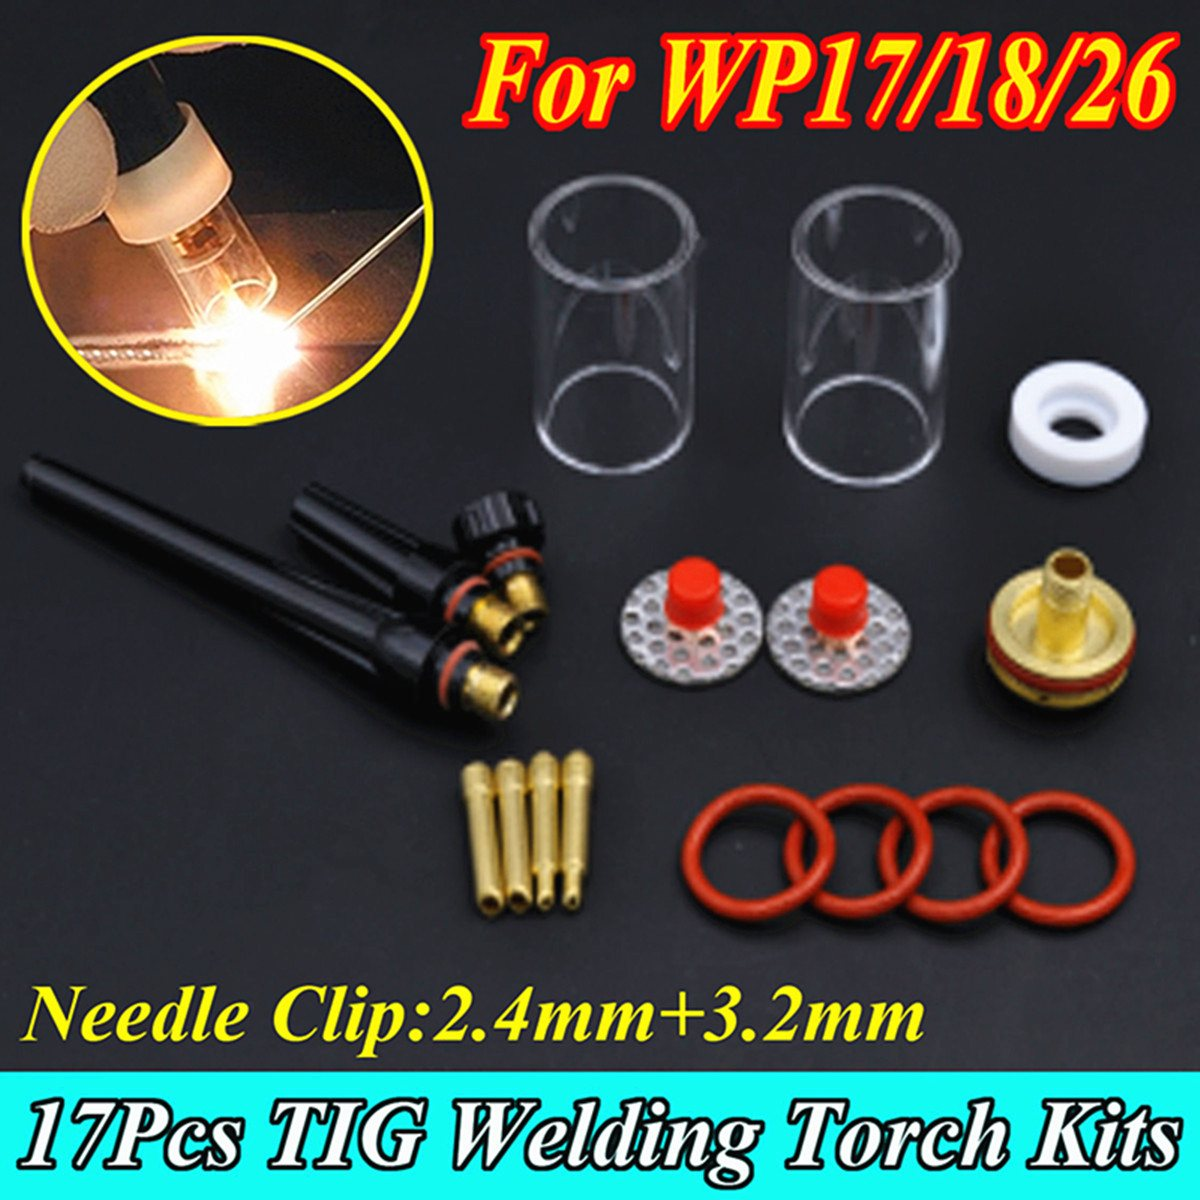 New 17PCS TIG Welding Torch Gas Lens Pyrex Glass Cup Stubby Collet FOR WP-17/18/26 Series Welding Accessories wp 17f sr 17f tig welding torch complete 20feet 6meter soldering iron flexible